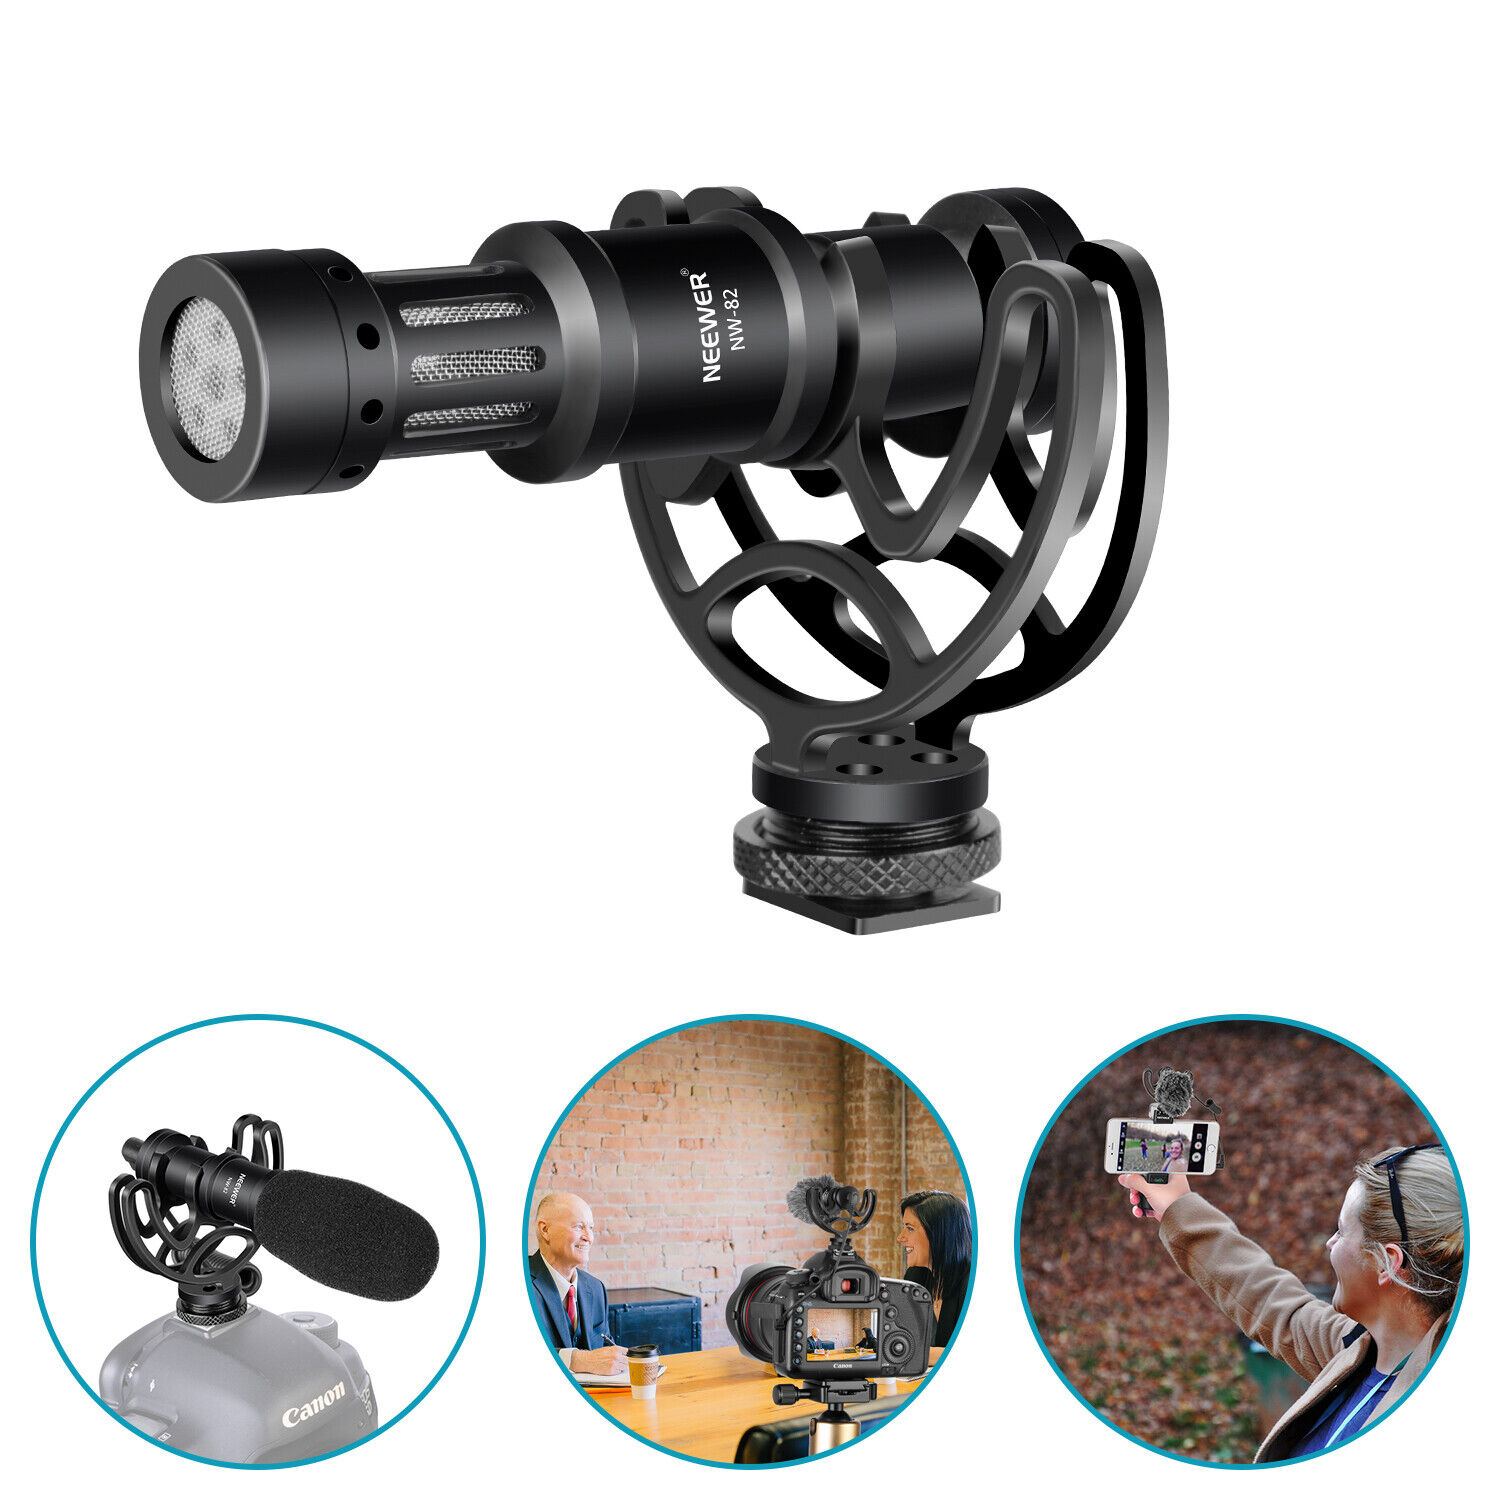 Neewer Universal Video Microphone with Shock Mount for Cameras and Smartphones